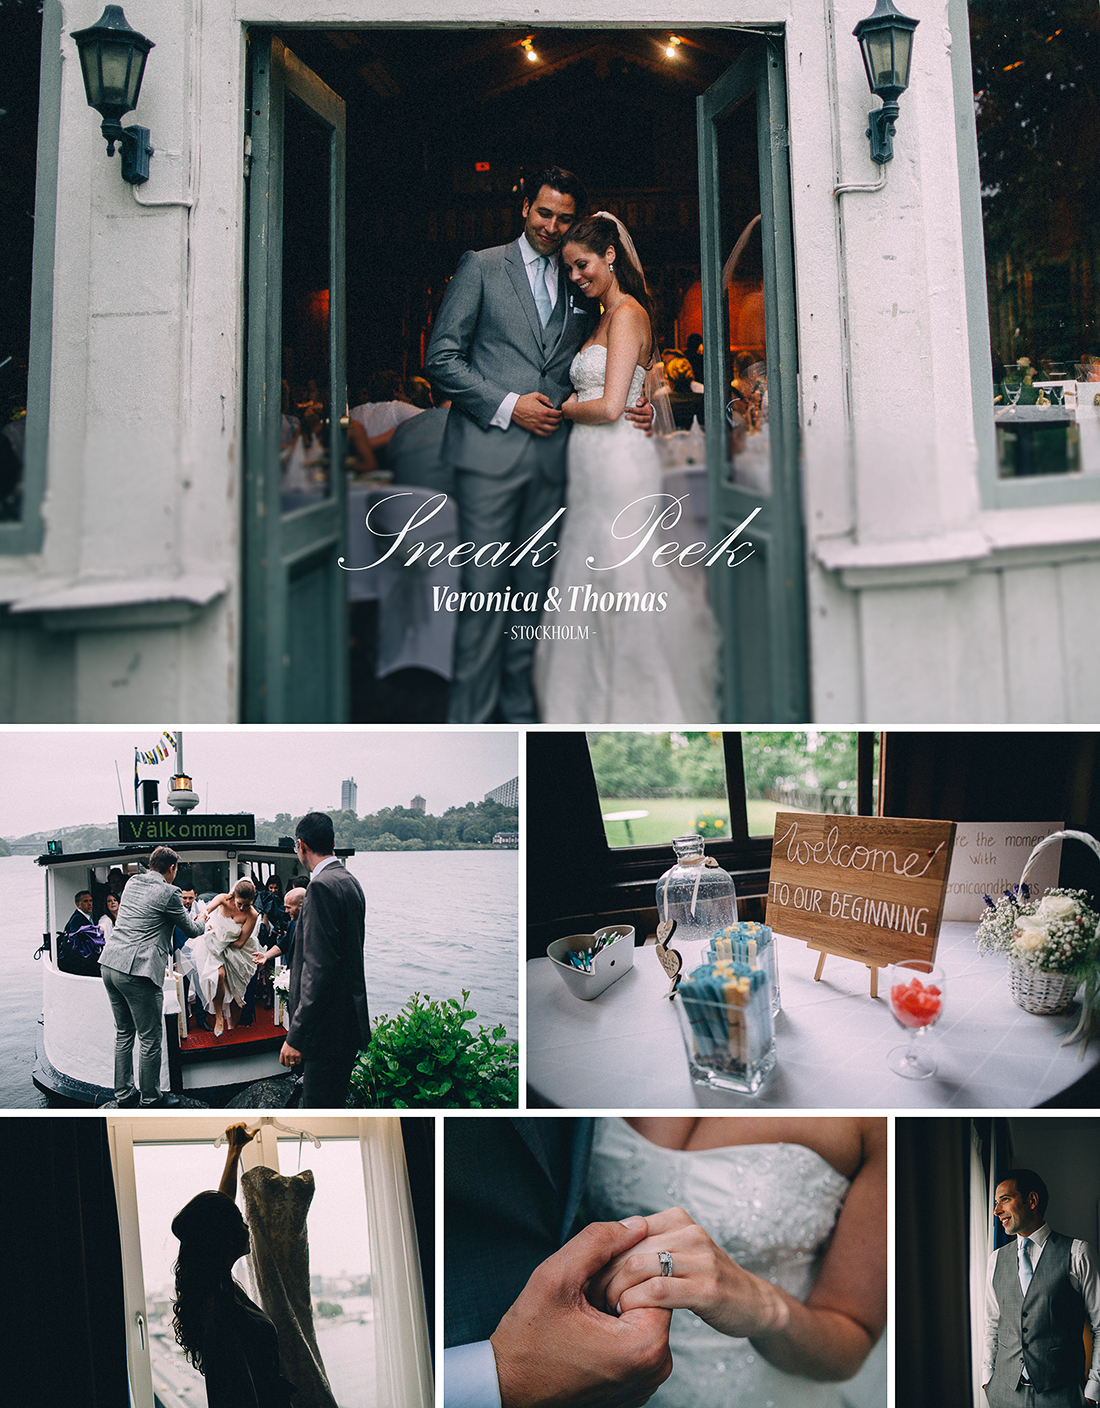 Sneak-Peek-Wedding-Veronica-Thomas-Stockholm-Summer-July